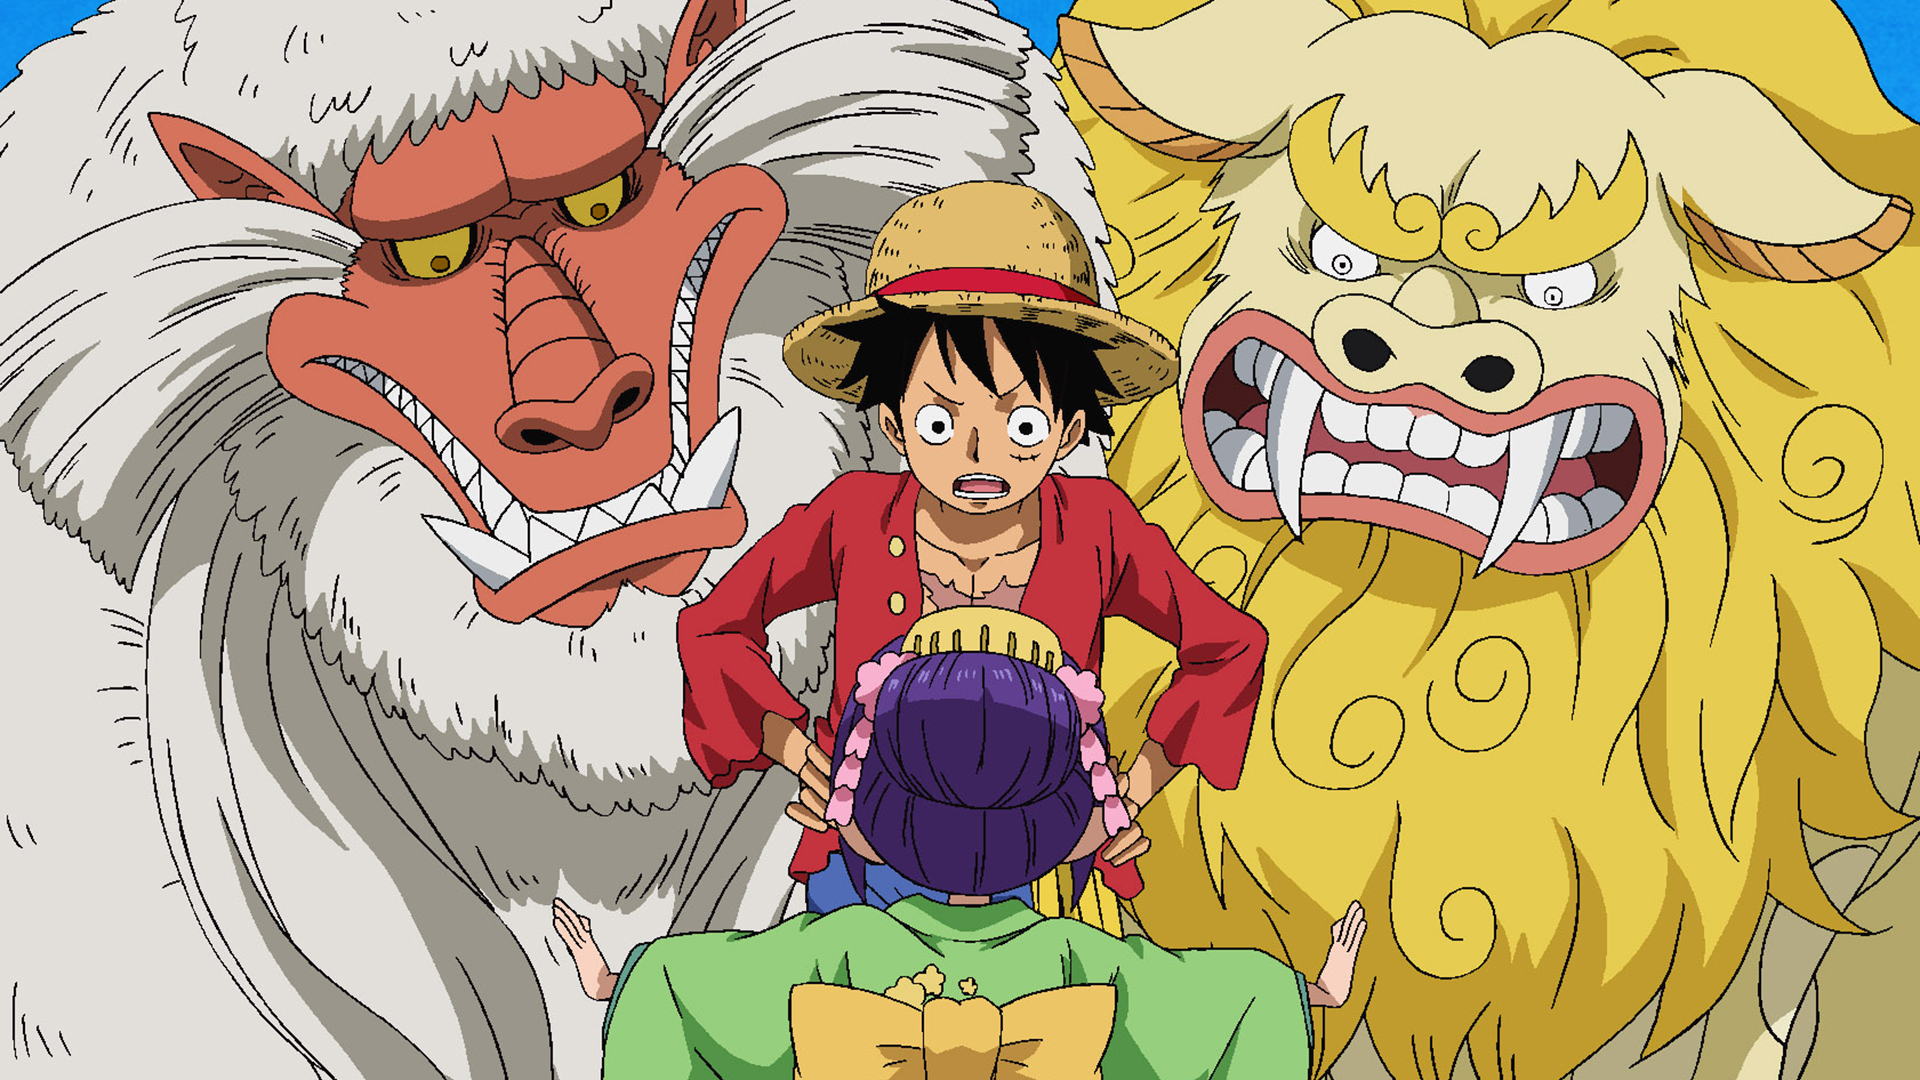 Watch One Piece Season 13 Episode 894 Sub Dub Anime